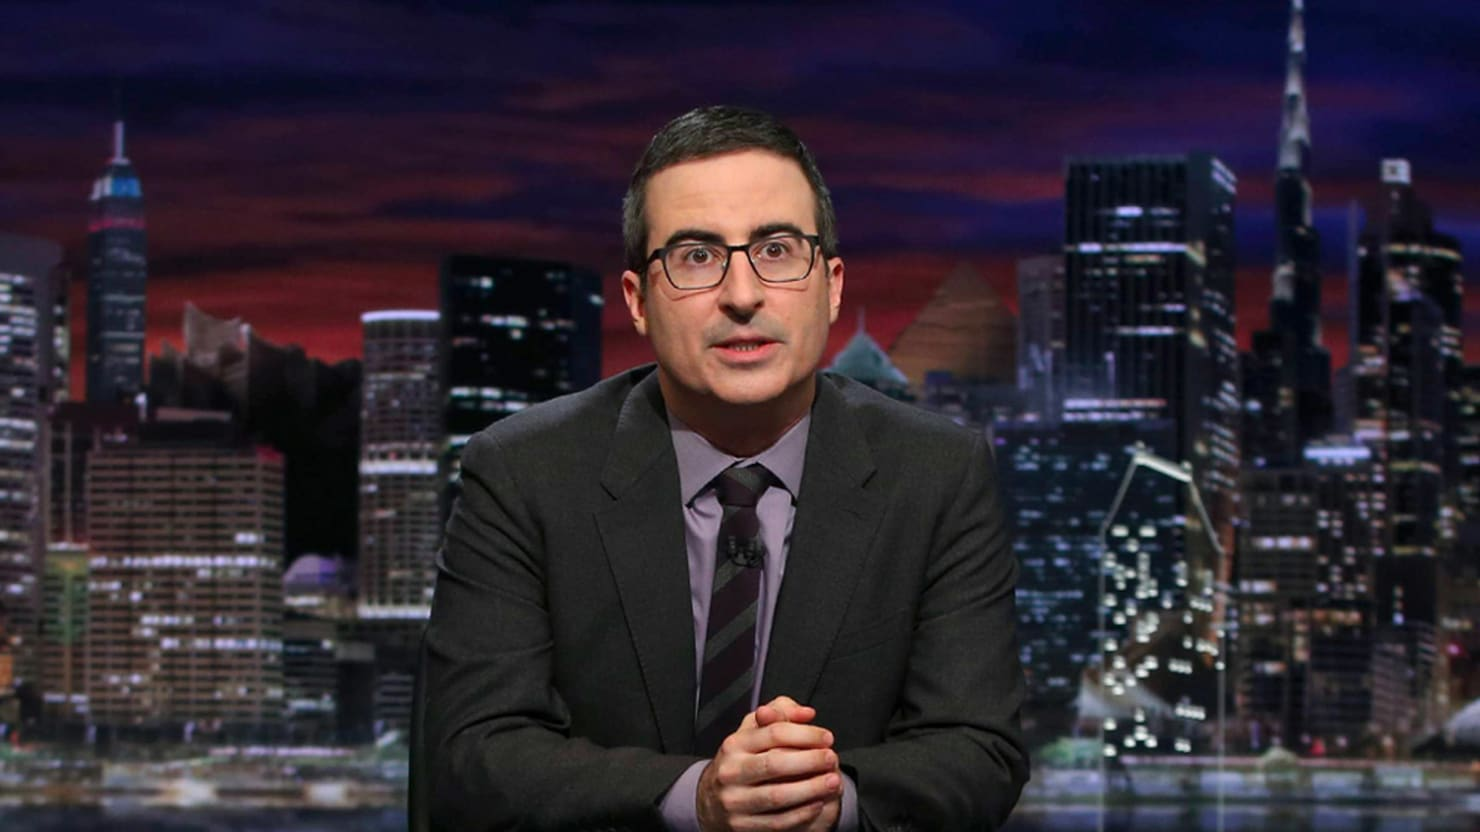 John Oliver Goes Off on Brexit: Britain Leaving the EU Is 'Absolutely Insane'